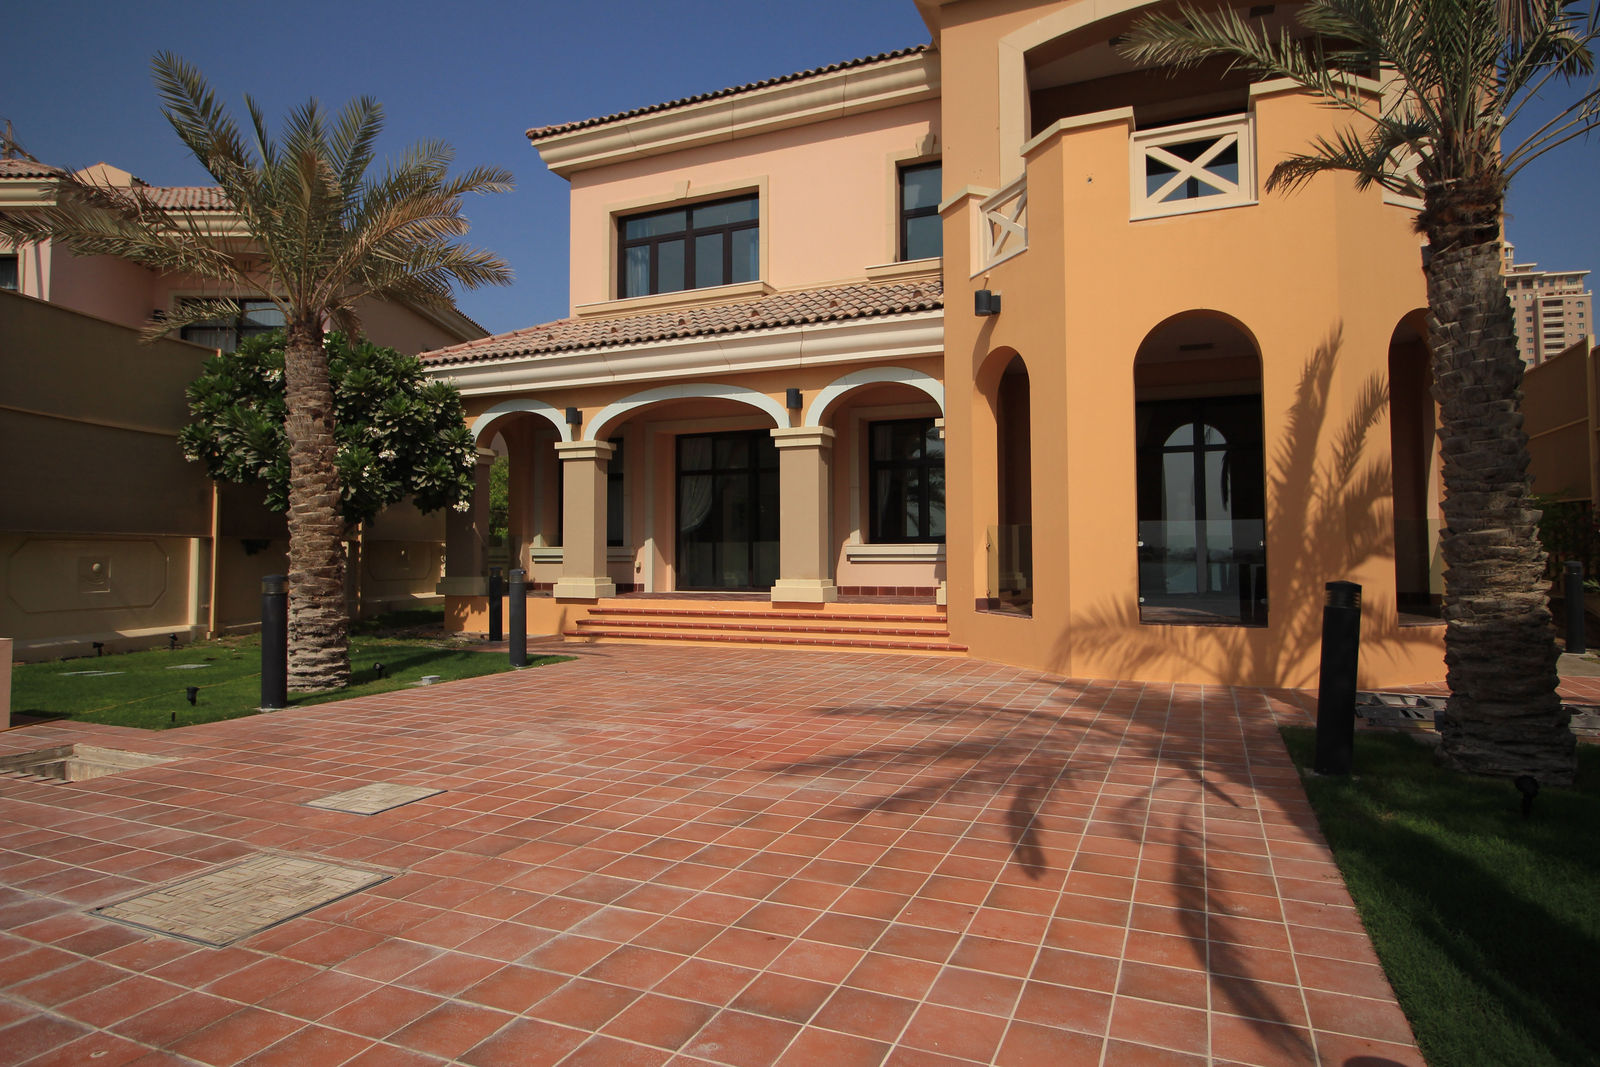 Beautiful house for sașe / rent in The Pearl - Qatar - FG Realty